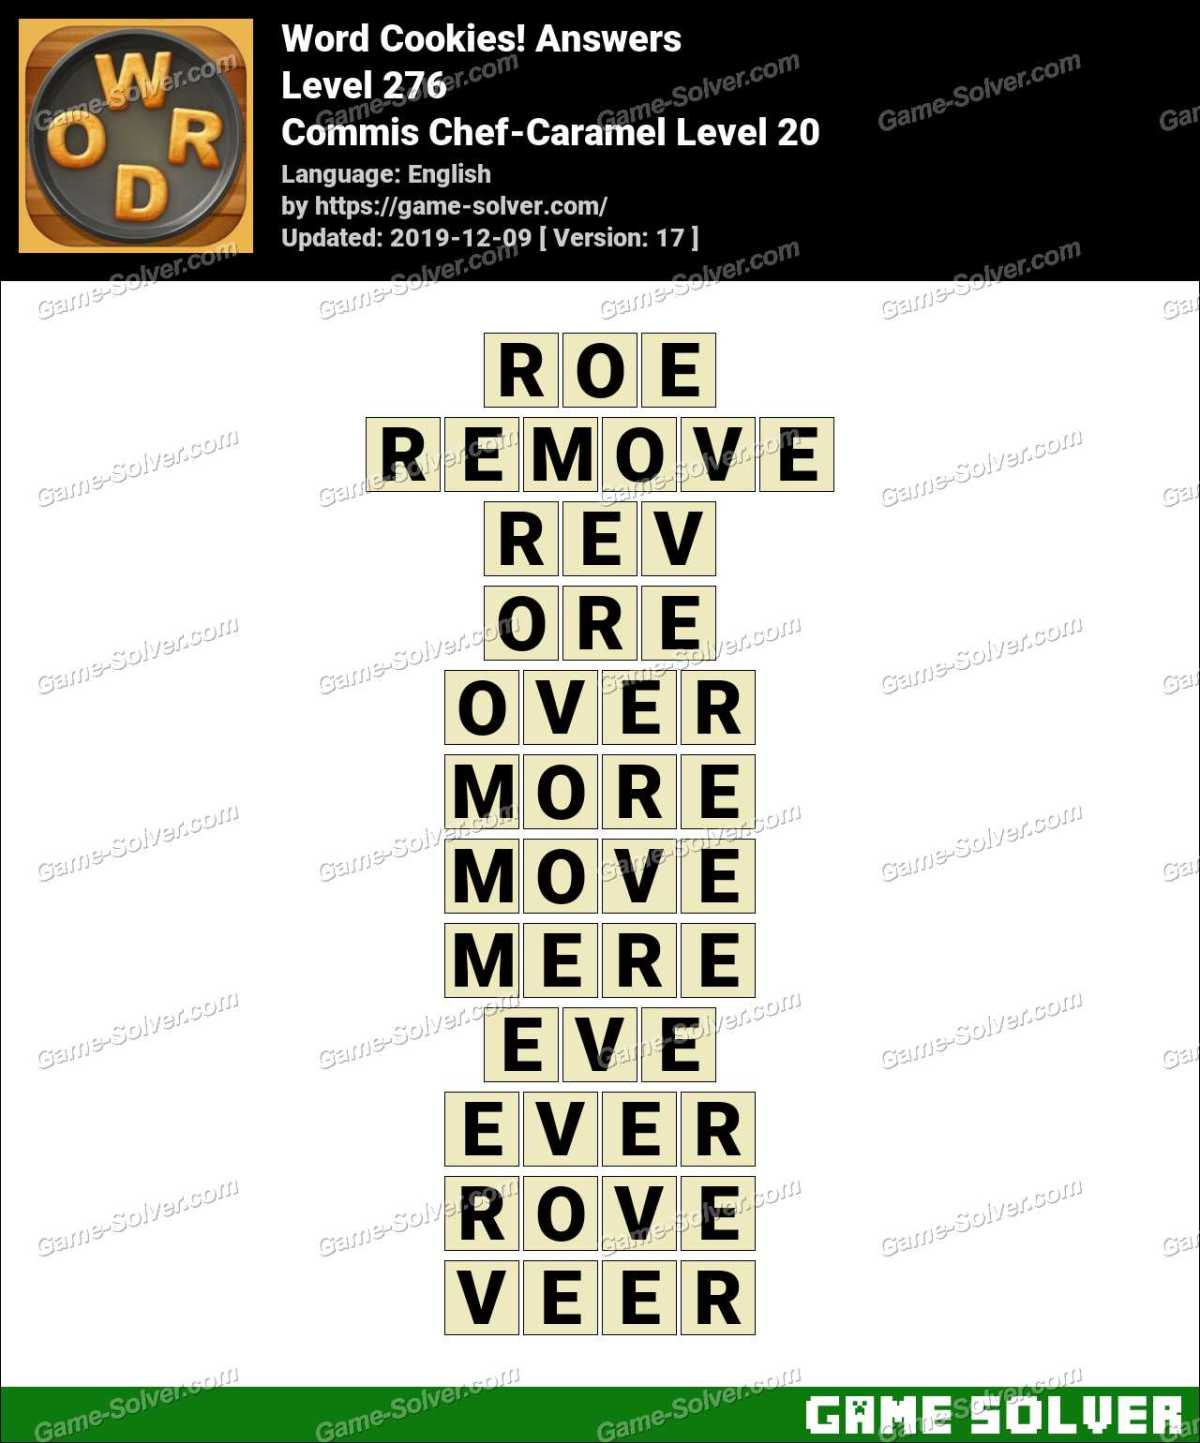 Word Cookies Commis Chef-Caramel Level 20 Answers